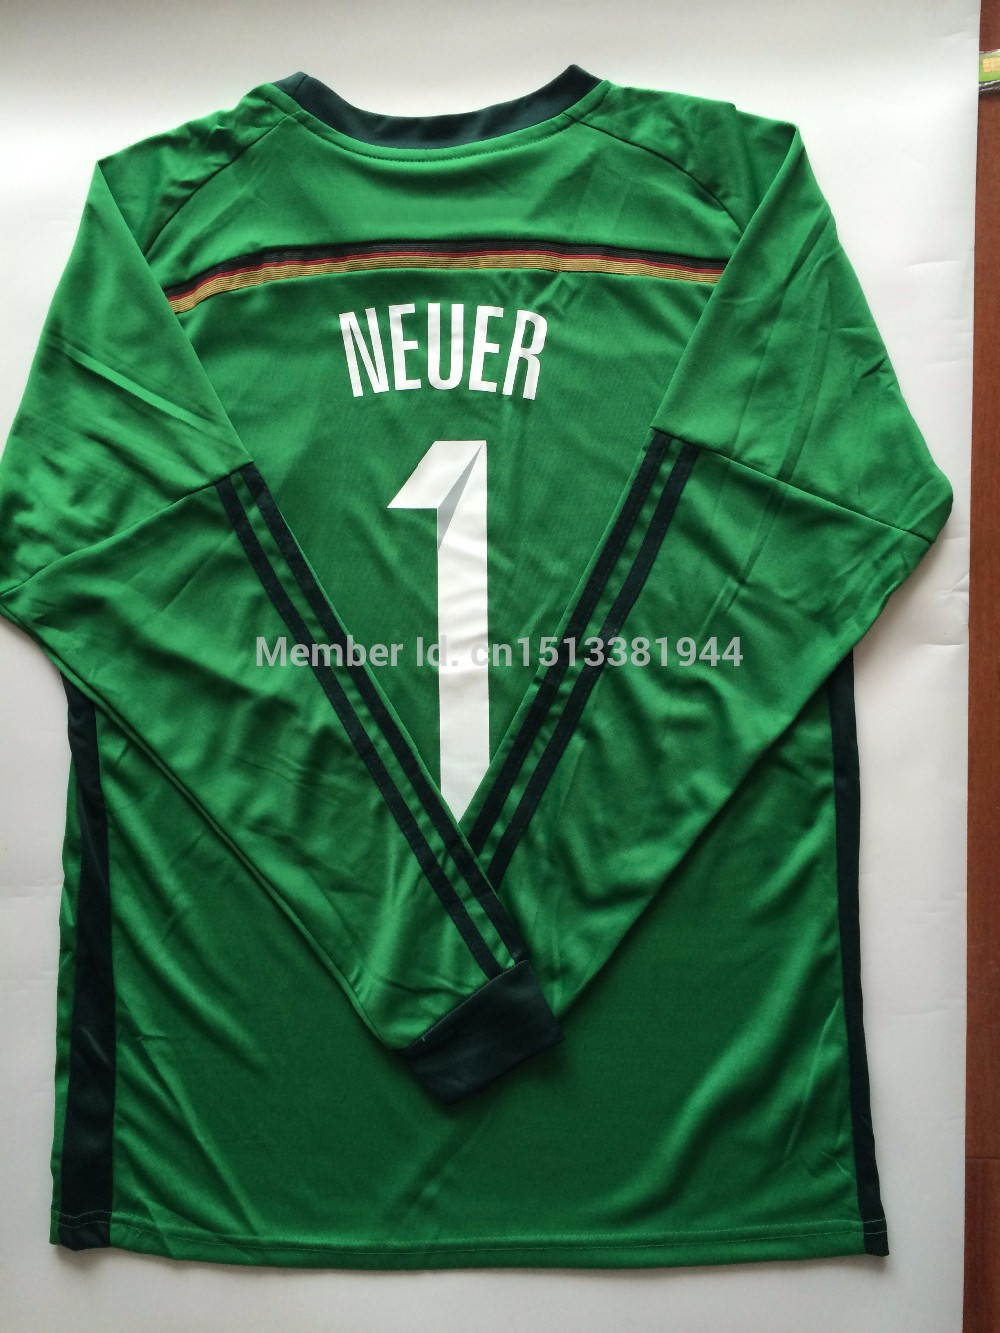 e2b0ede92dd Germany neuer jersey-- high quality Germany soccer jersey 2014 with 4 stars  number team germany soccer jersey for men